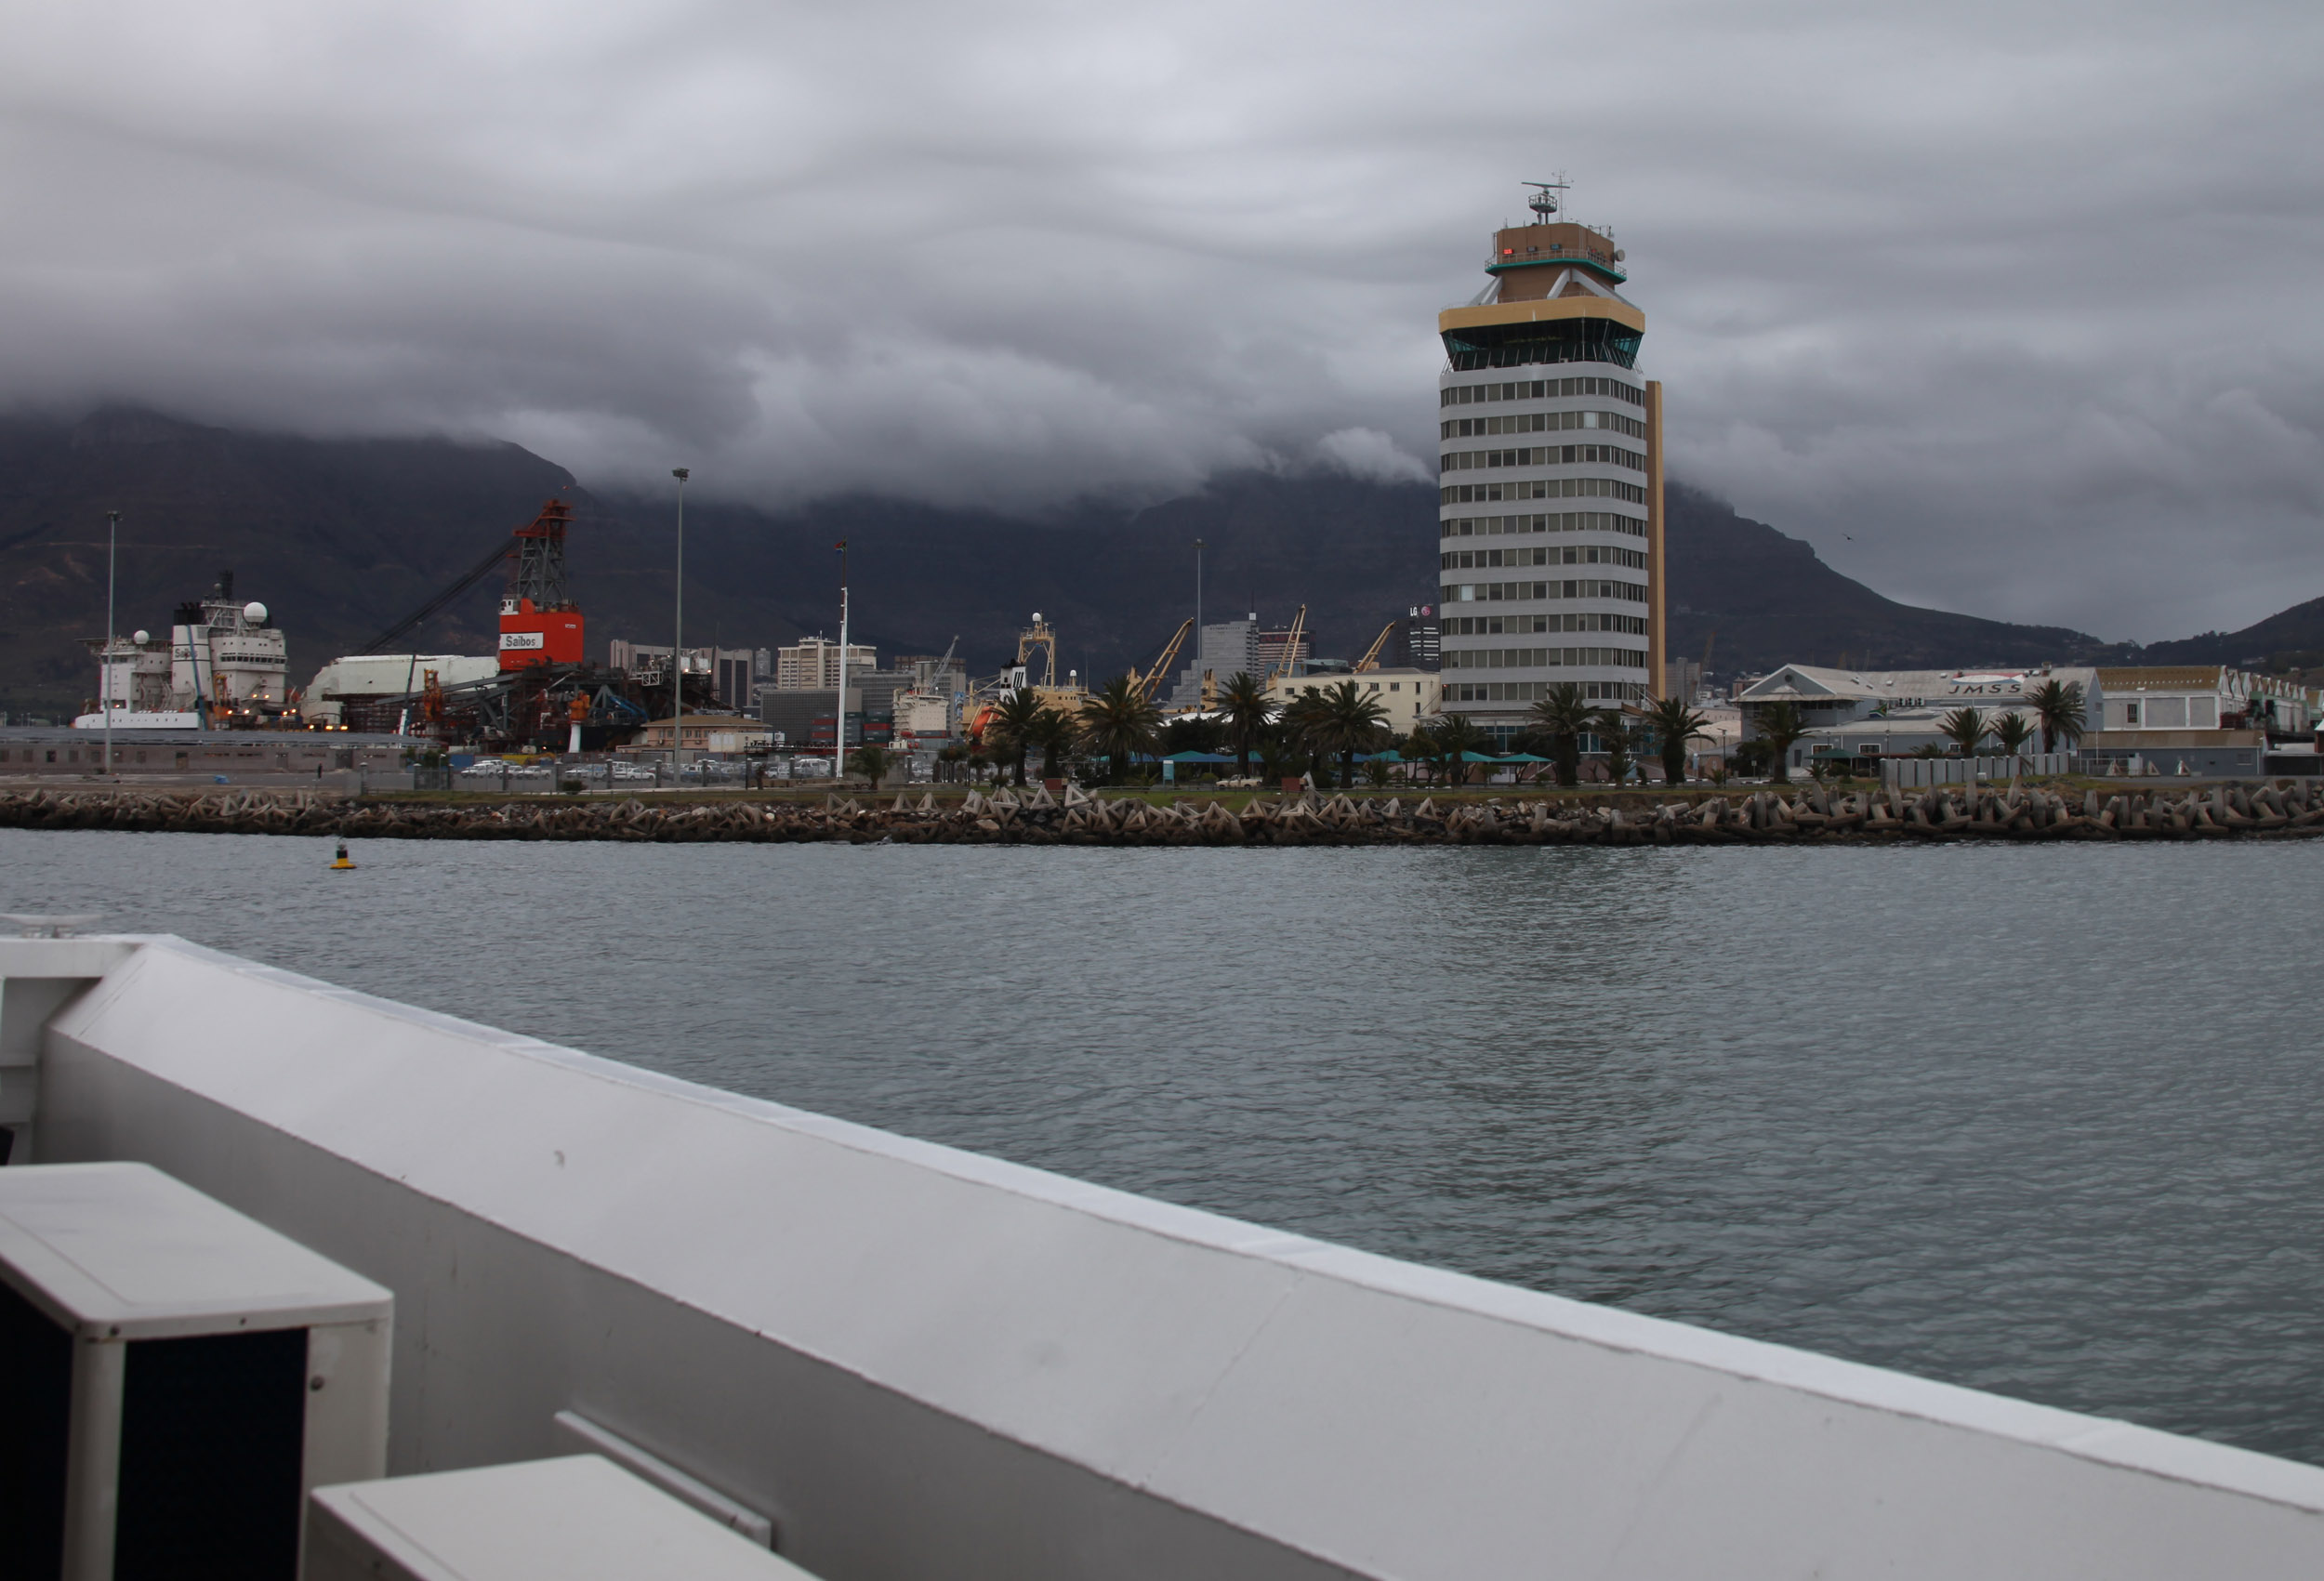 View of city and table mountain from the ferry